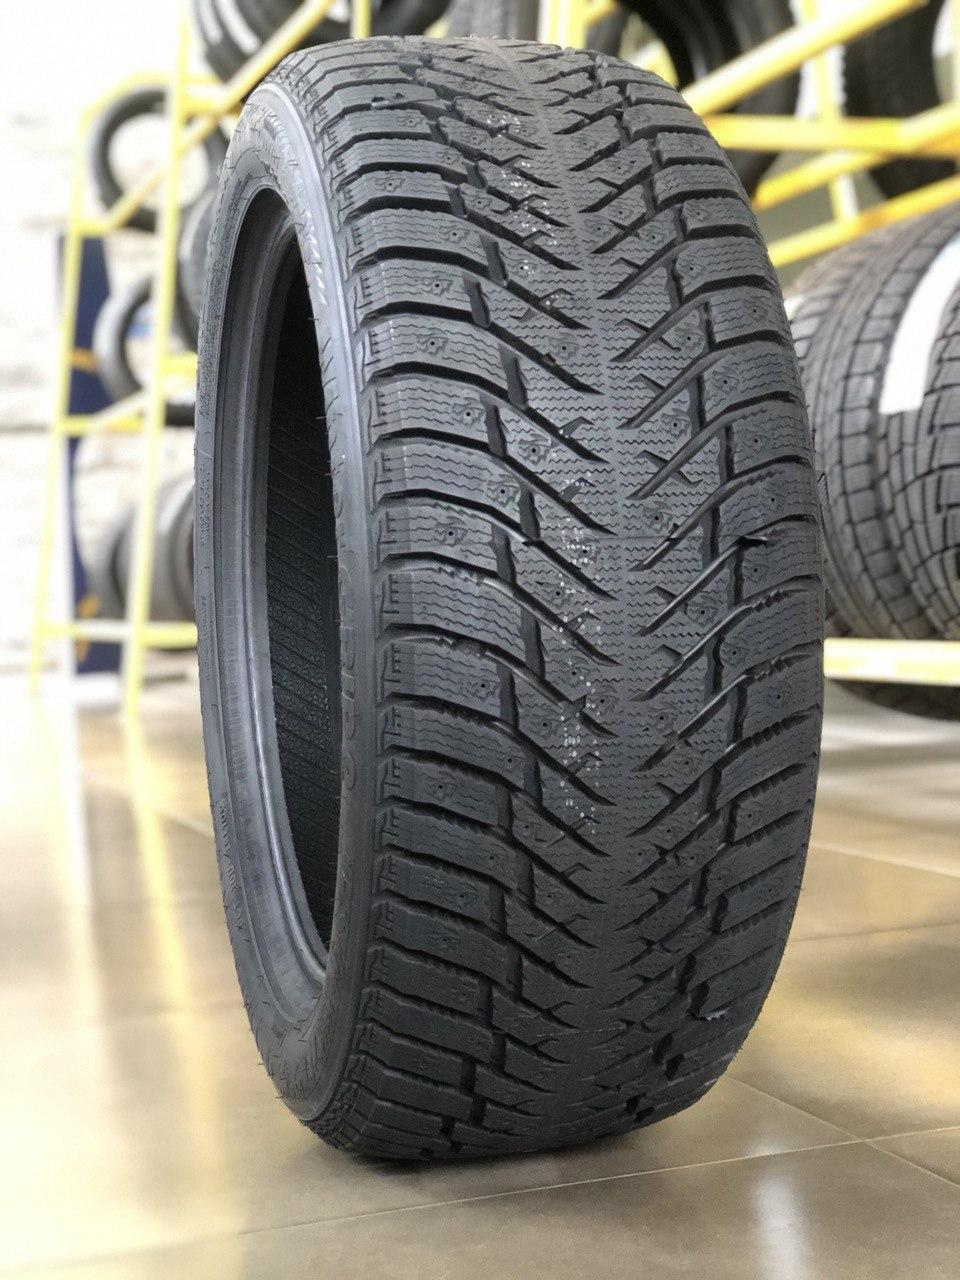 Anvelopa 195/45 R16 Green-Max Winter Grip 2 (Linglong) photo